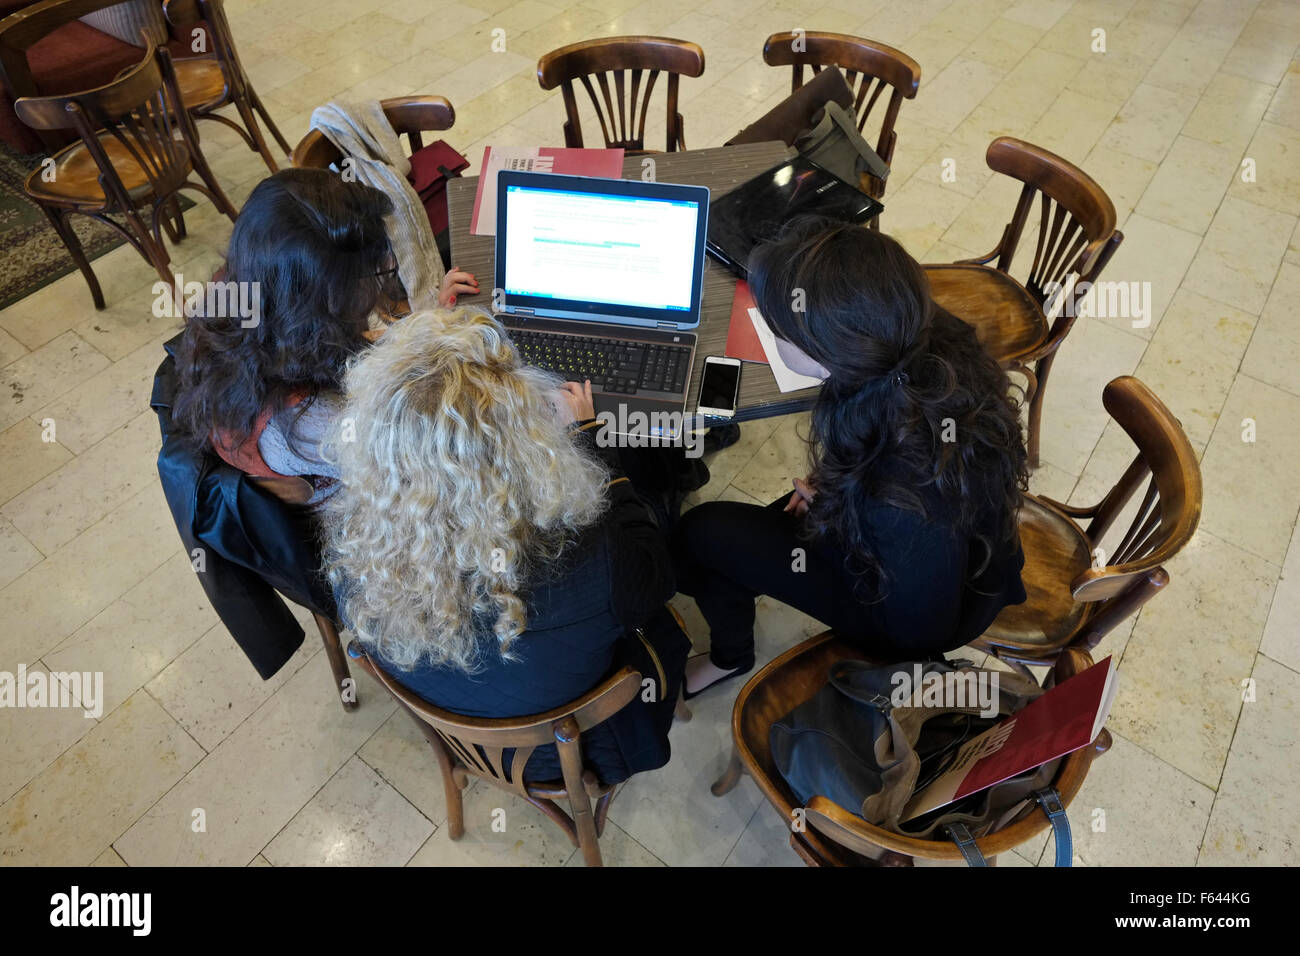 Israeli students using a laptop computer in a coffeehouse in Jerusalem Israel - Stock Image